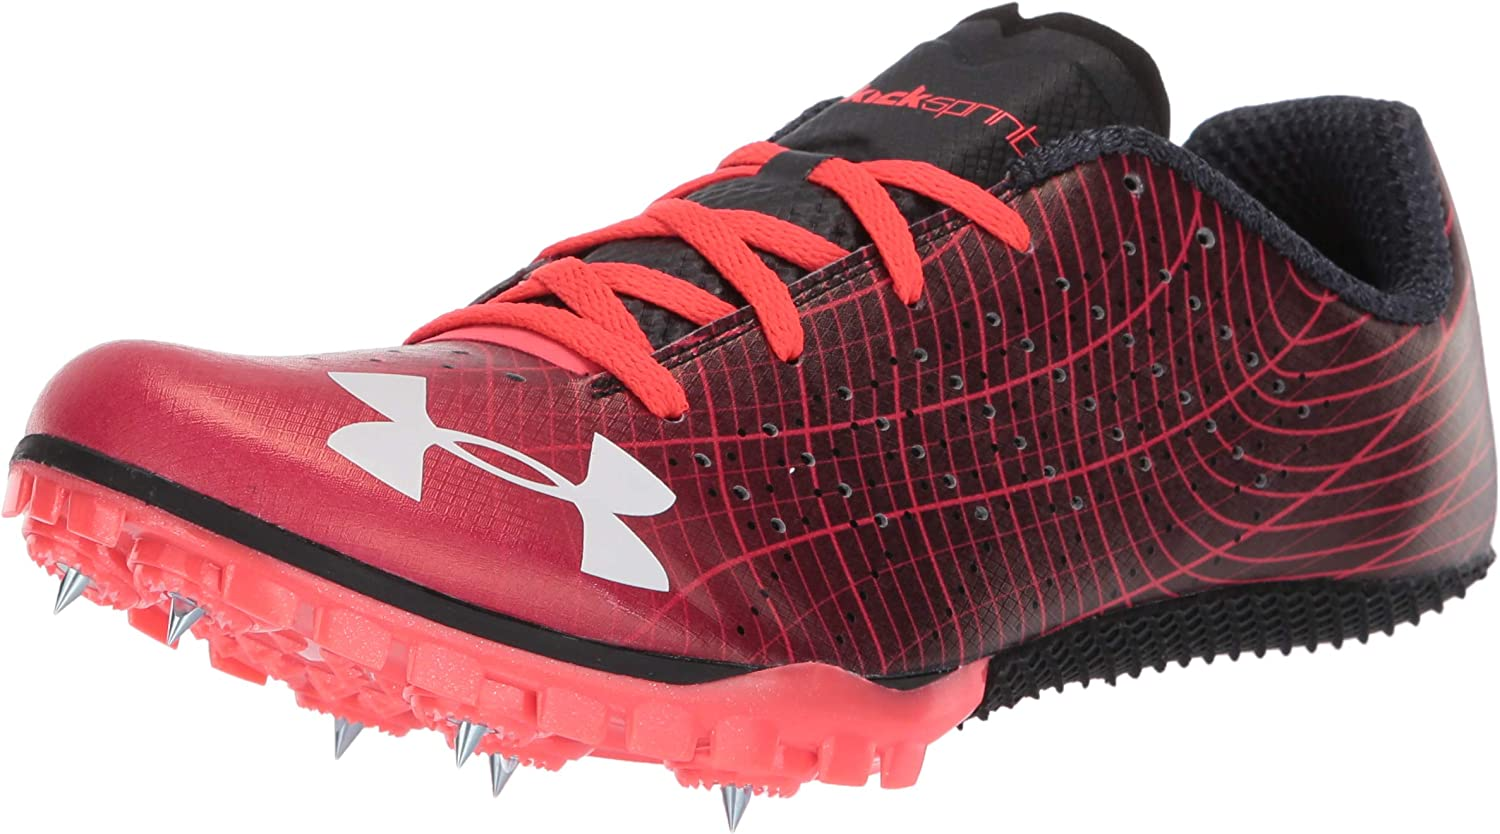 Don't miss the Ranking TOP18 campaign Under Armour Unisex-Adult Kick 3 Sprint Shoe Running